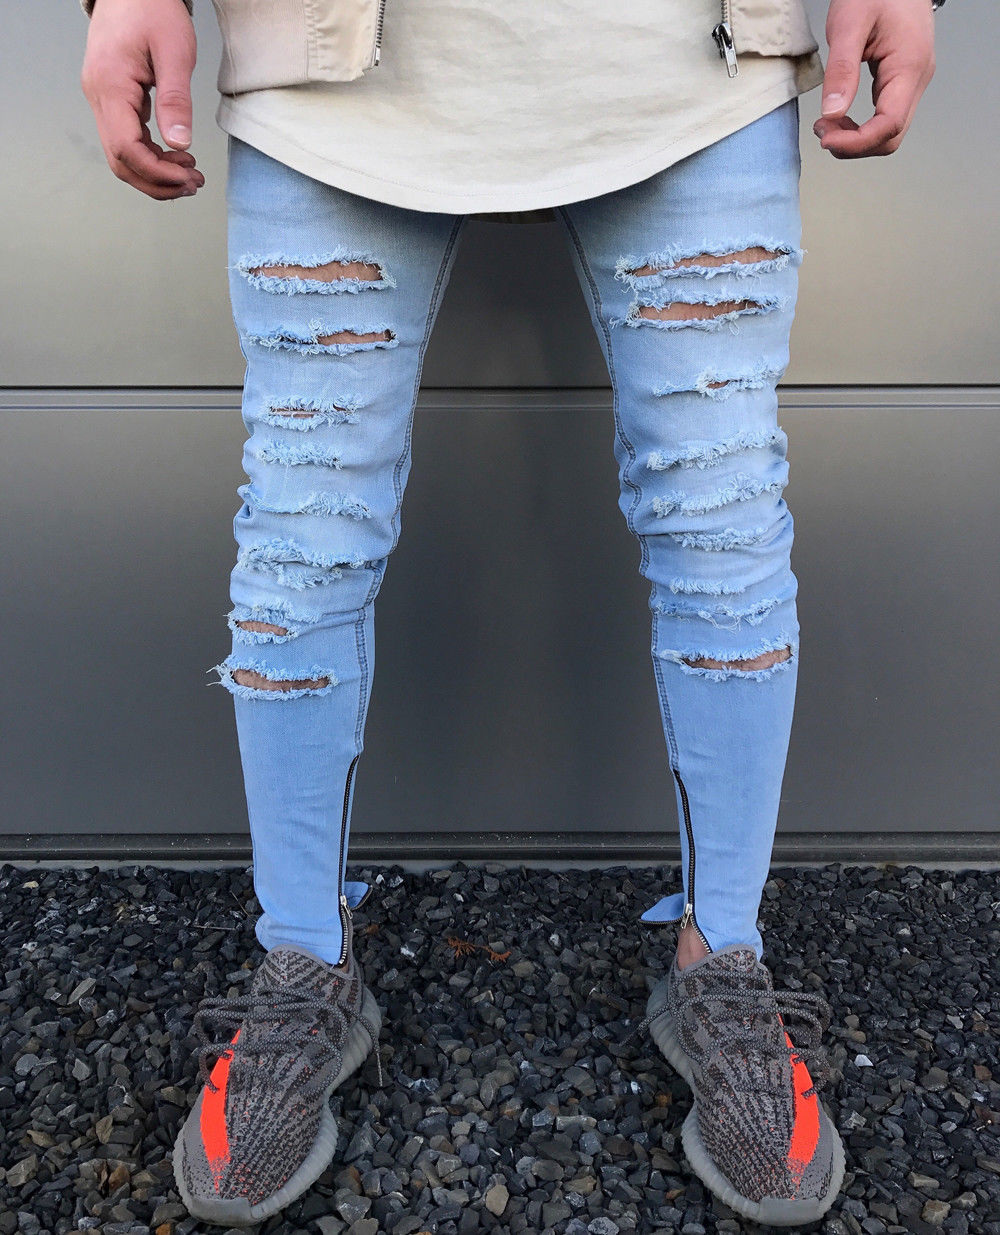 Fashion Men Ripped Skinny Hole Jeans Destroyed Frayed Slim Fit Denim Pants Stylish Mens Fake Zipper Pencil Denim Jeans free shipping ce831 60001 laserjet pro m1132 1215 1212formatter board 125a pressure roller printer parts on sale